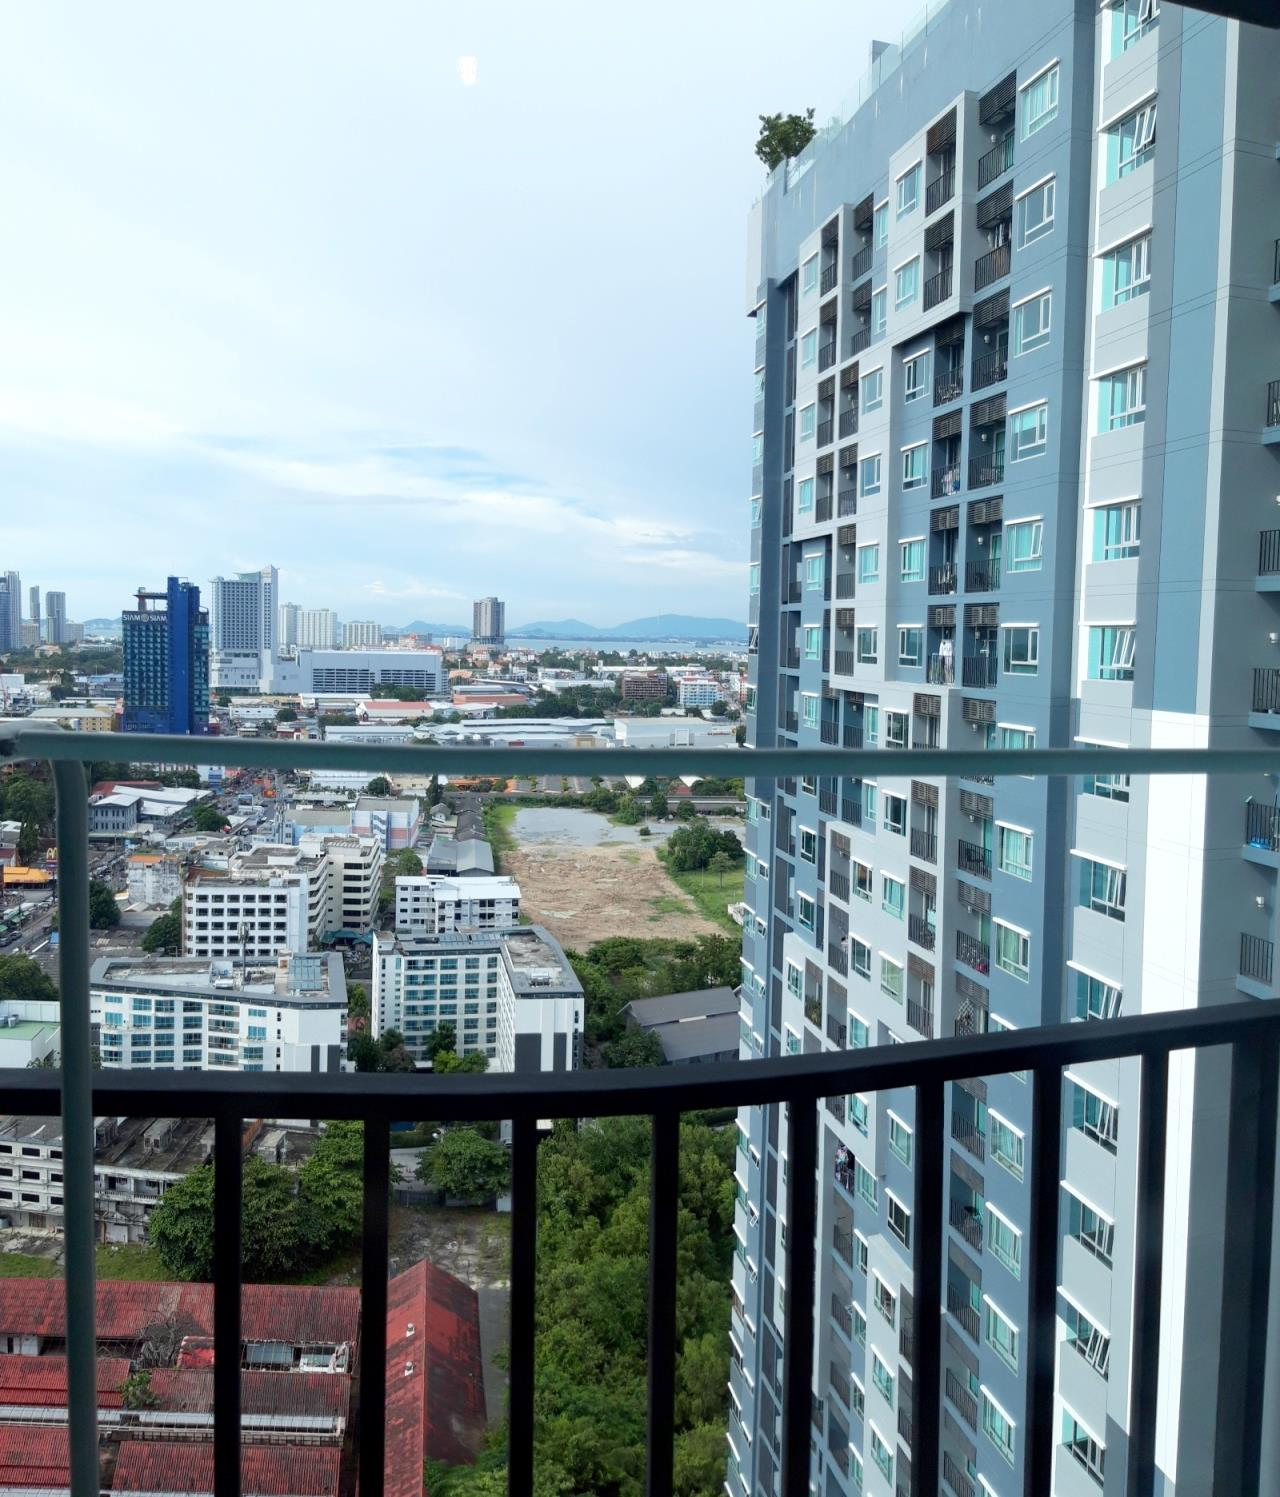 Centric C Realty Agency's Centric sea pattaya 2 Rd 8